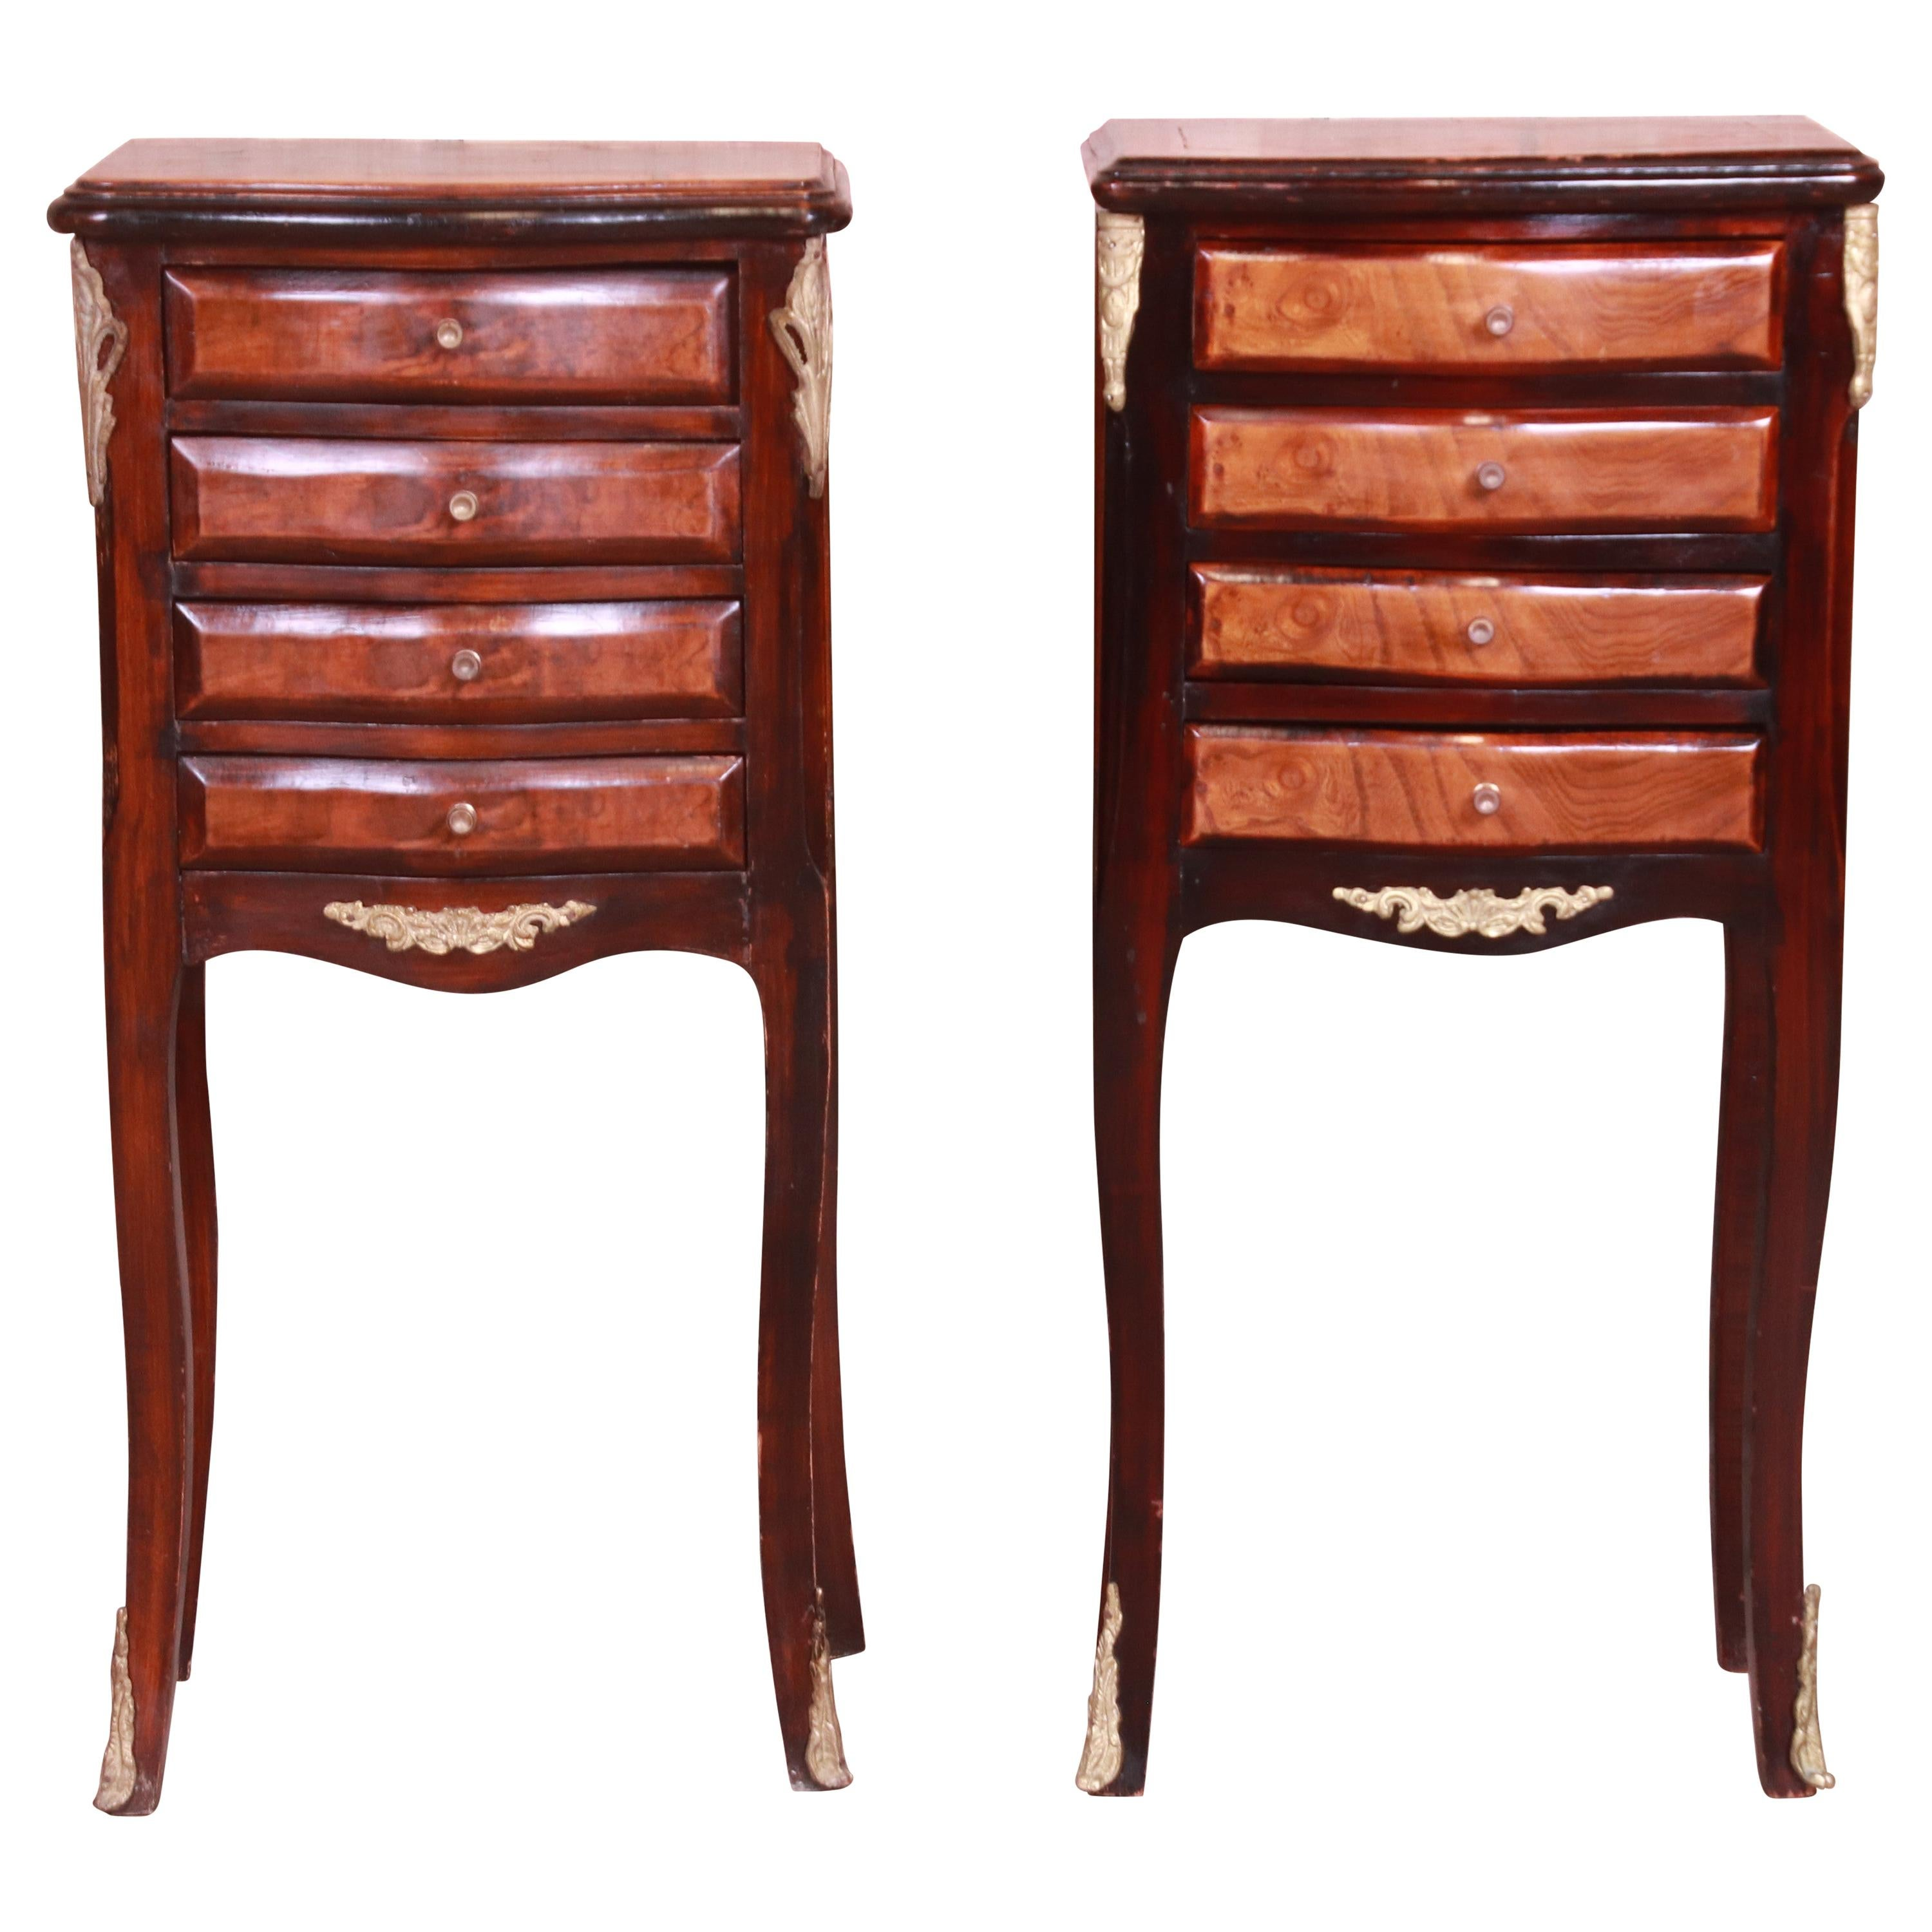 Petite French Provincial Louis XV Mahogany and Burl Wood Nightstands, Pair